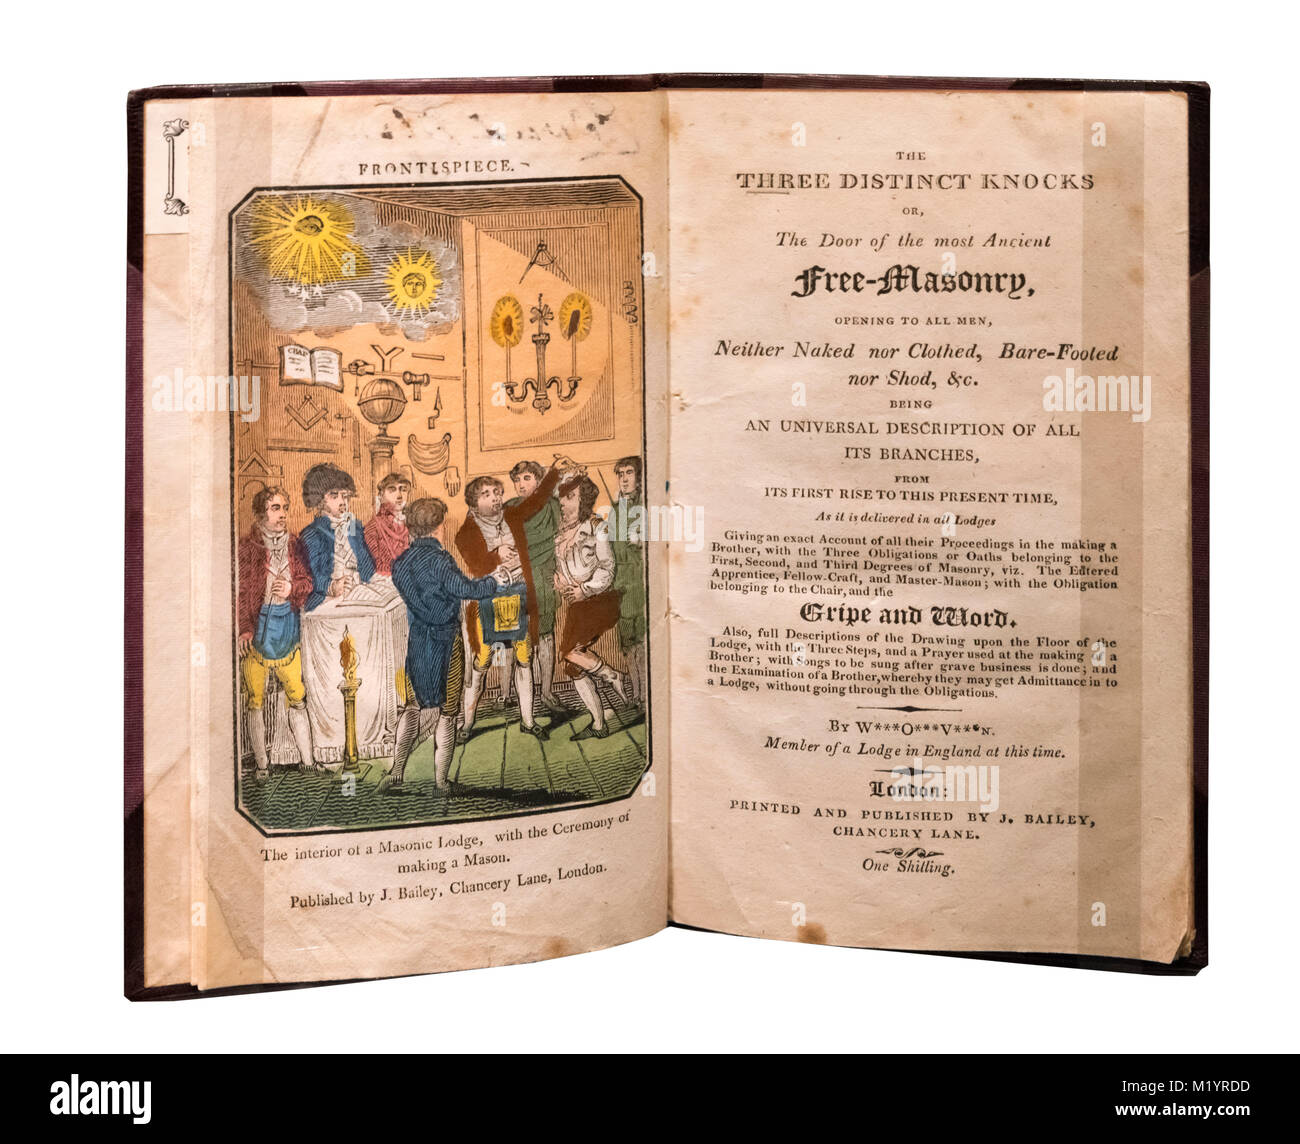 The Three Distinct Knocks, an early 19th century book about the rituals of the Freemasons (c.1818). - Stock Image